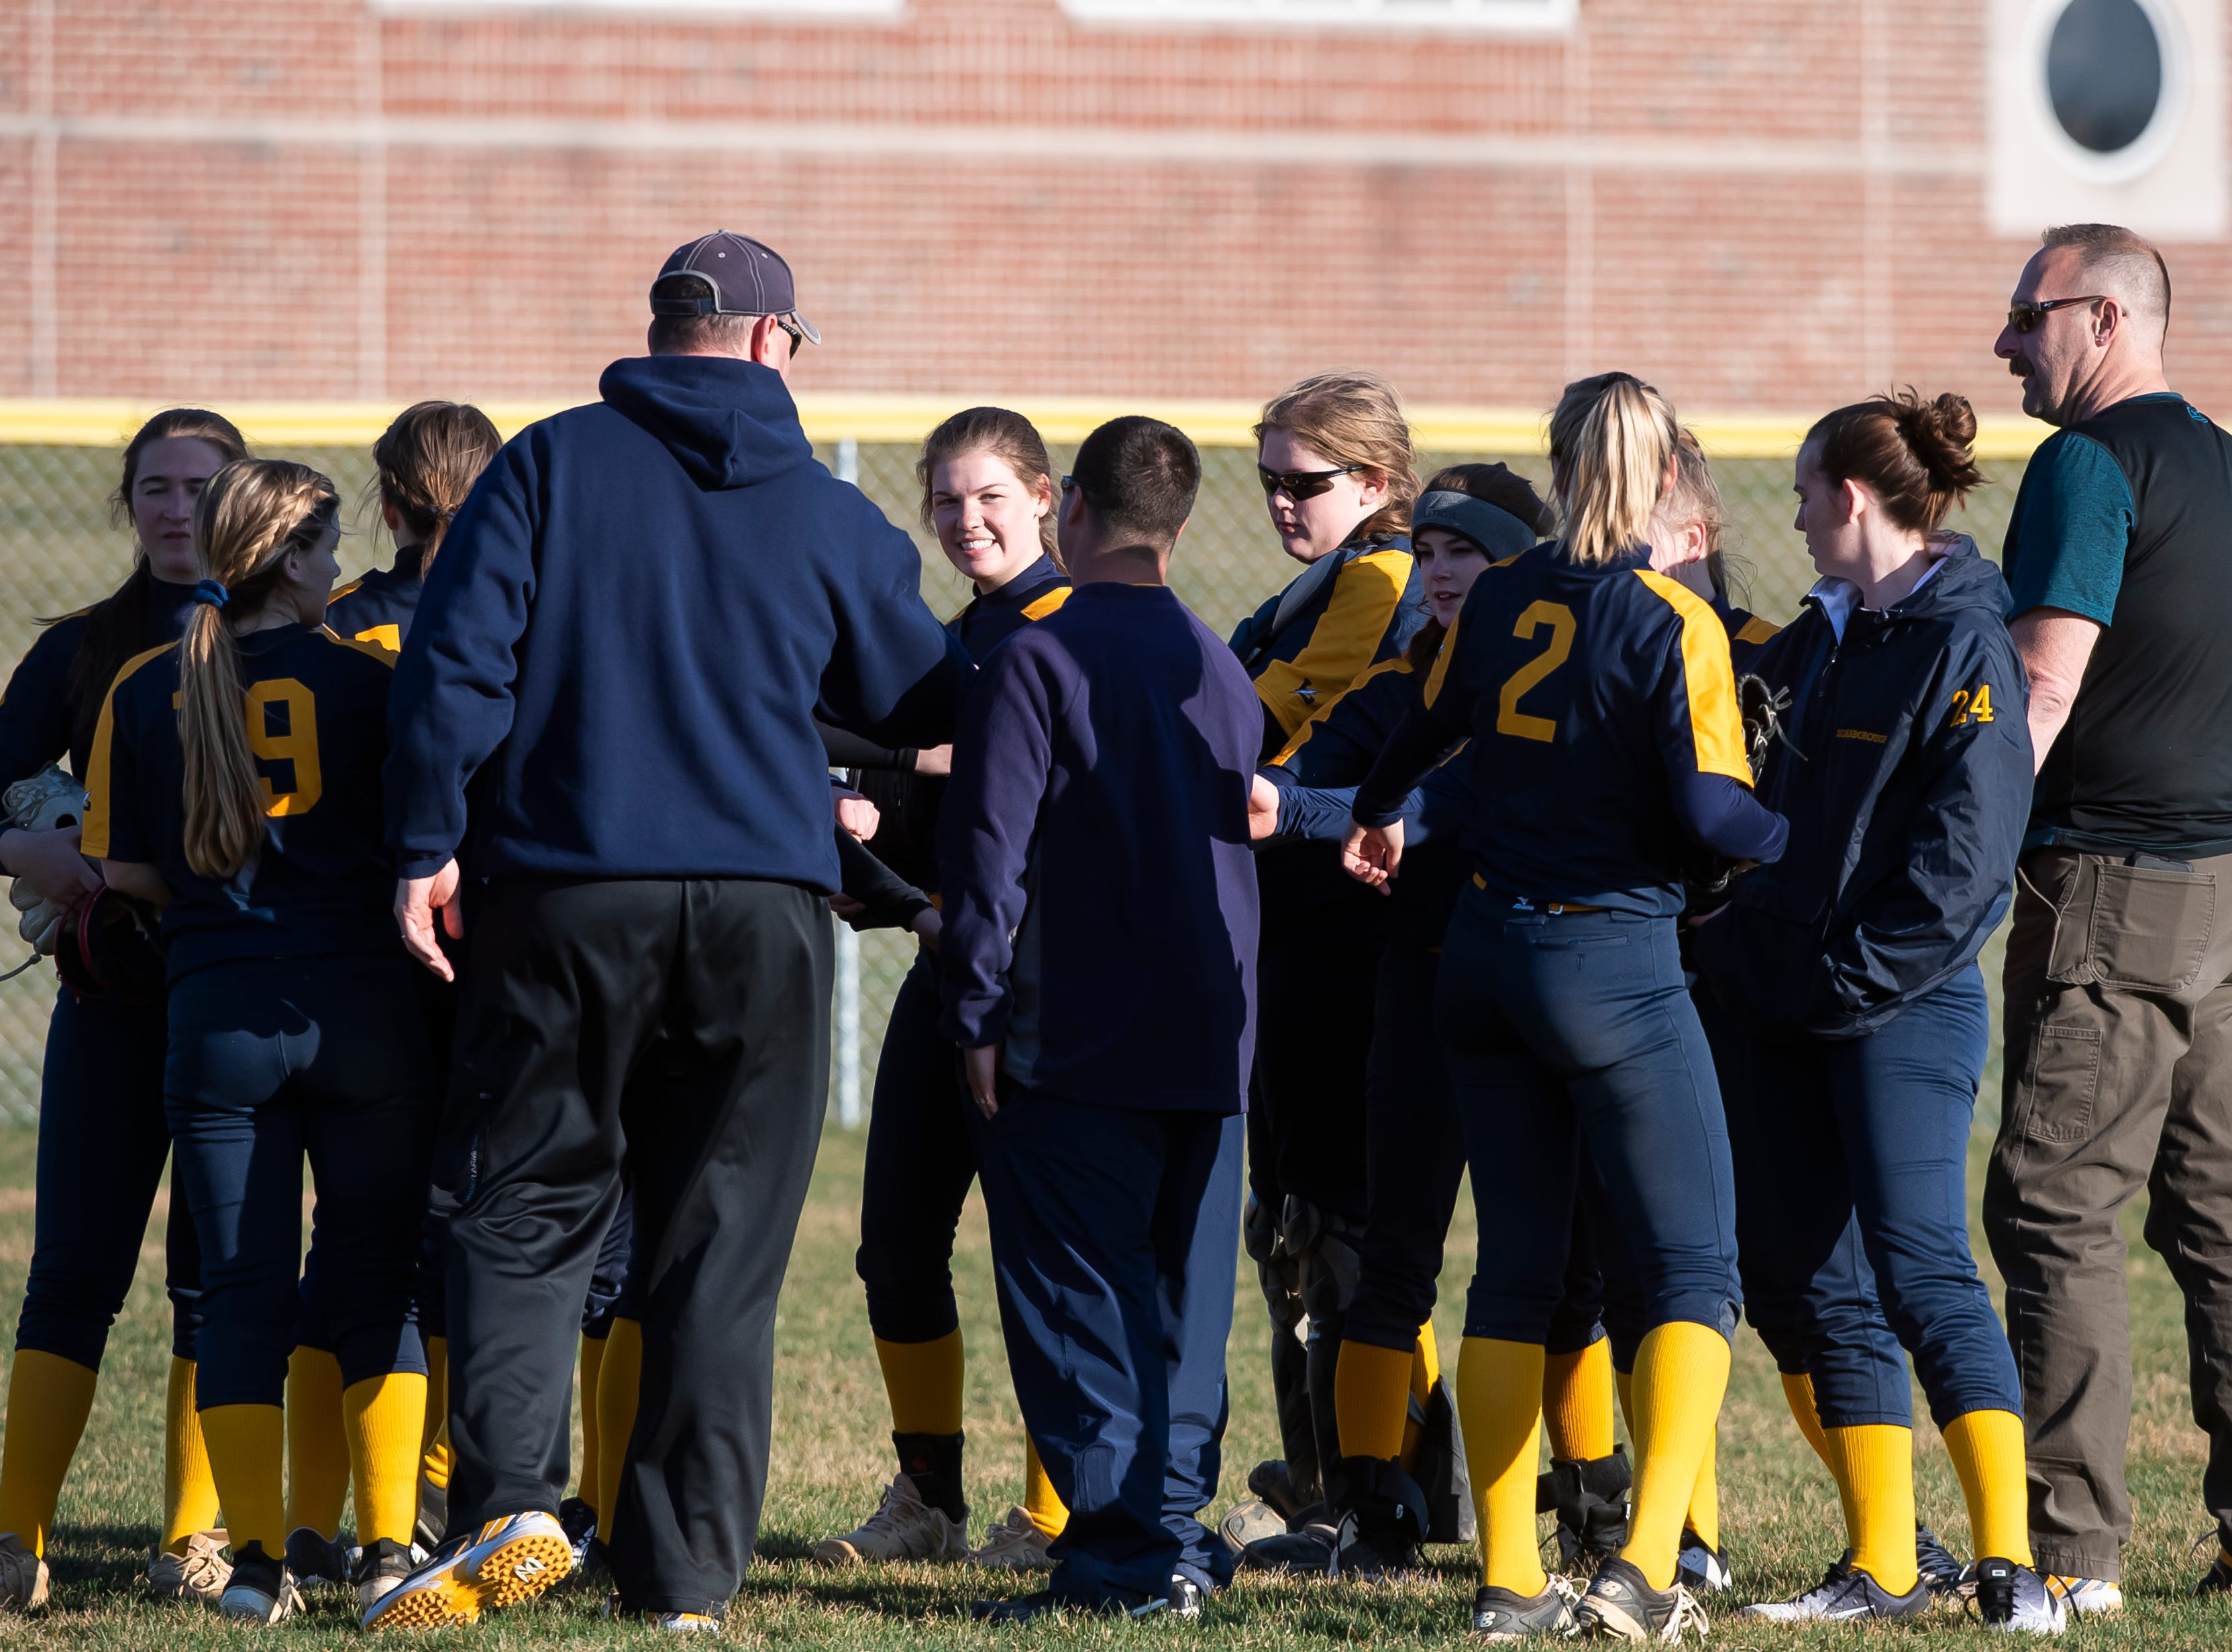 The Littlestown Bolts meet in the outfield after defeating Gettysburg 10-4 in a YAIAA softball game on Monday, April 1, 2019.